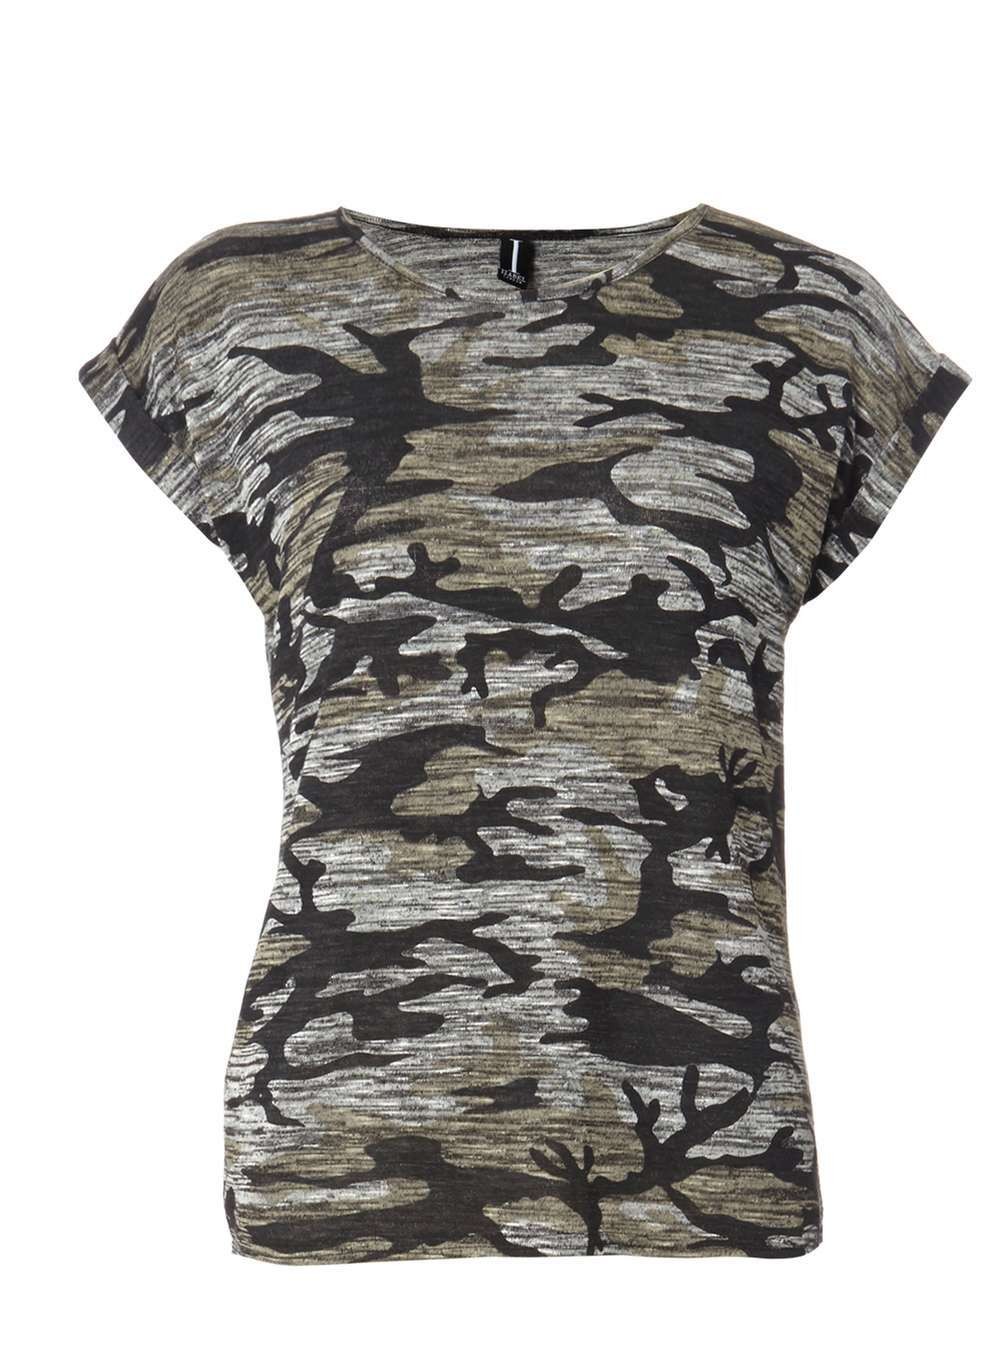 Womens **Izabel London Grey T Shirt Grey - style: t-shirt; predominant colour: mid grey; secondary colour: black; occasions: casual; length: standard; fibres: polyester/polyamide - stretch; fit: body skimming; neckline: crew; sleeve length: short sleeve; sleeve style: standard; pattern type: fabric; texture group: jersey - stretchy/drapey; pattern: camouflage; multicoloured: multicoloured; season: a/w 2016; wardrobe: highlight